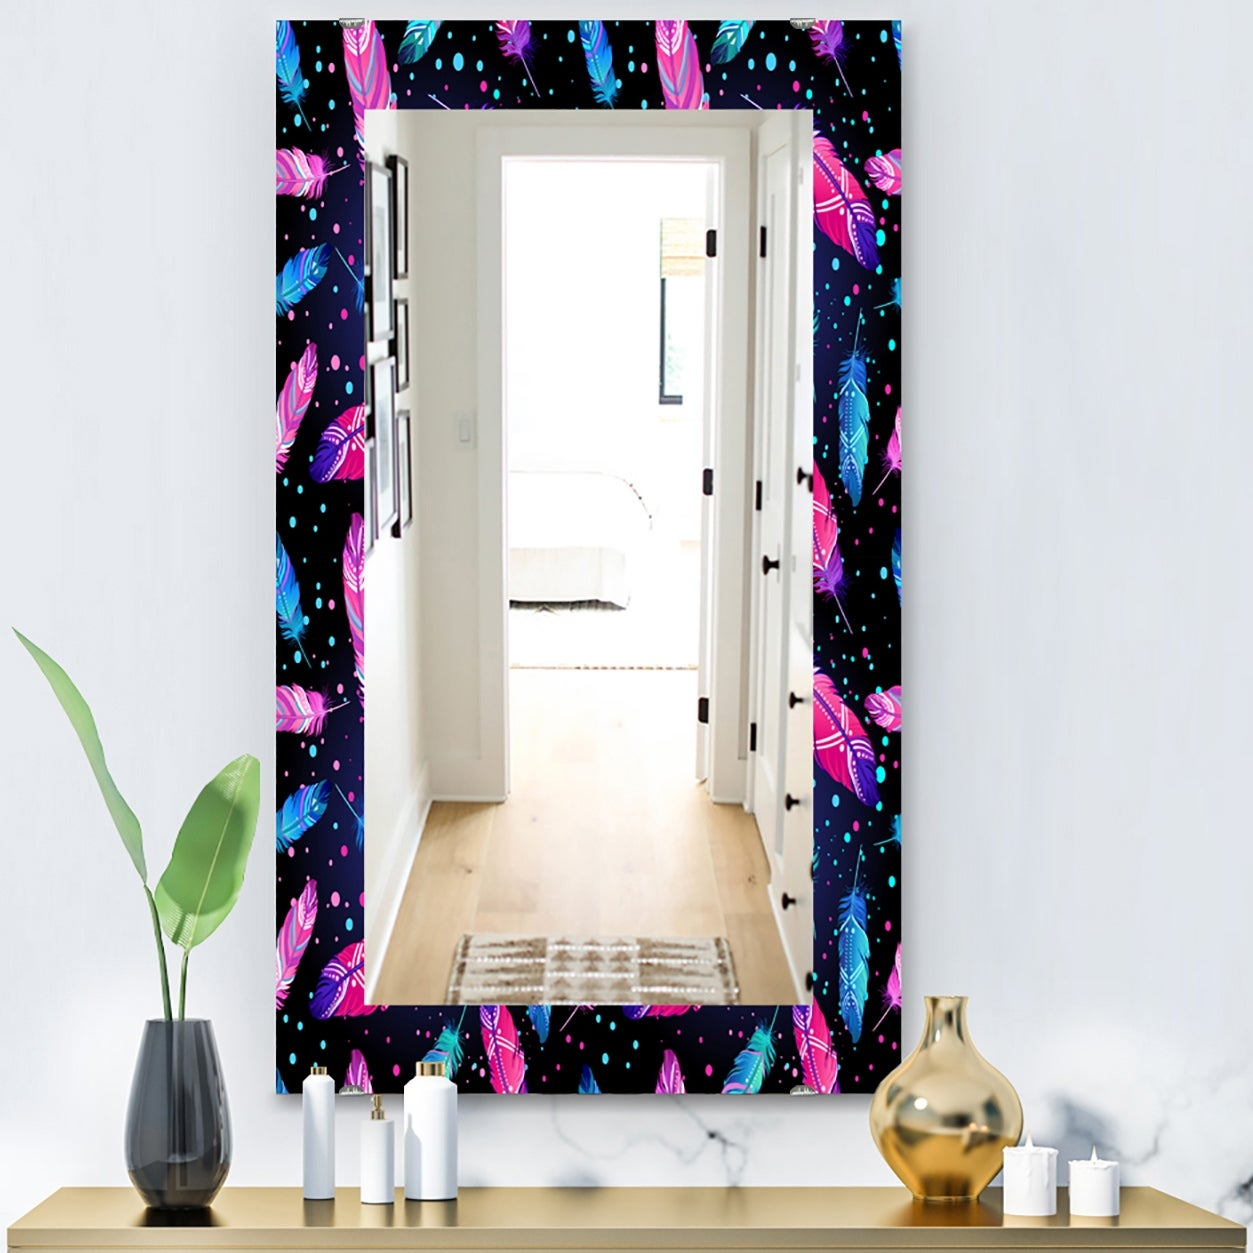 Designart Feathers 10 Bohemian And Eclectic Mirror Vanity Mirror Overstock 28557822